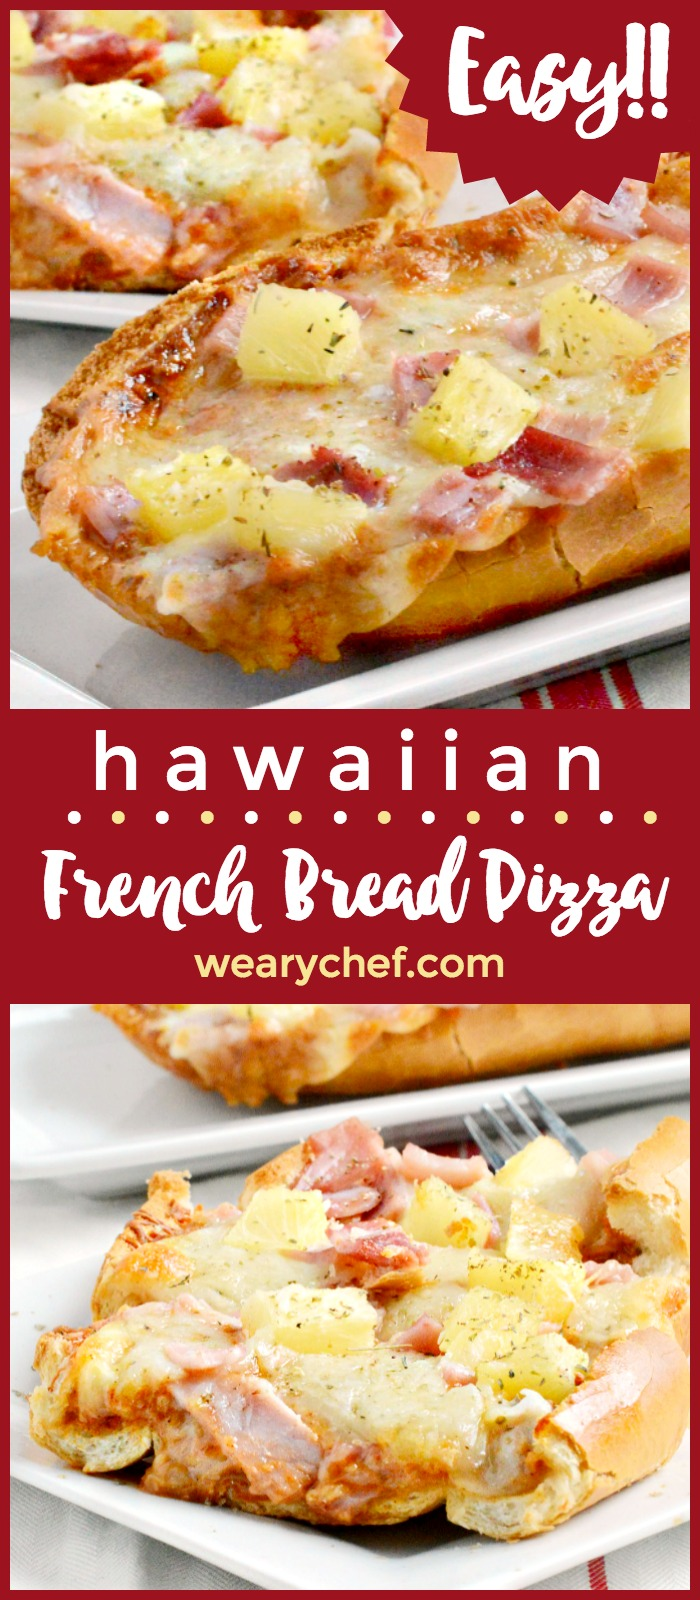 Hawaiian French Bread Pizza is super quick and easy, with the perfect balance of sweet, salty, and a little spicy. Your family will love it!